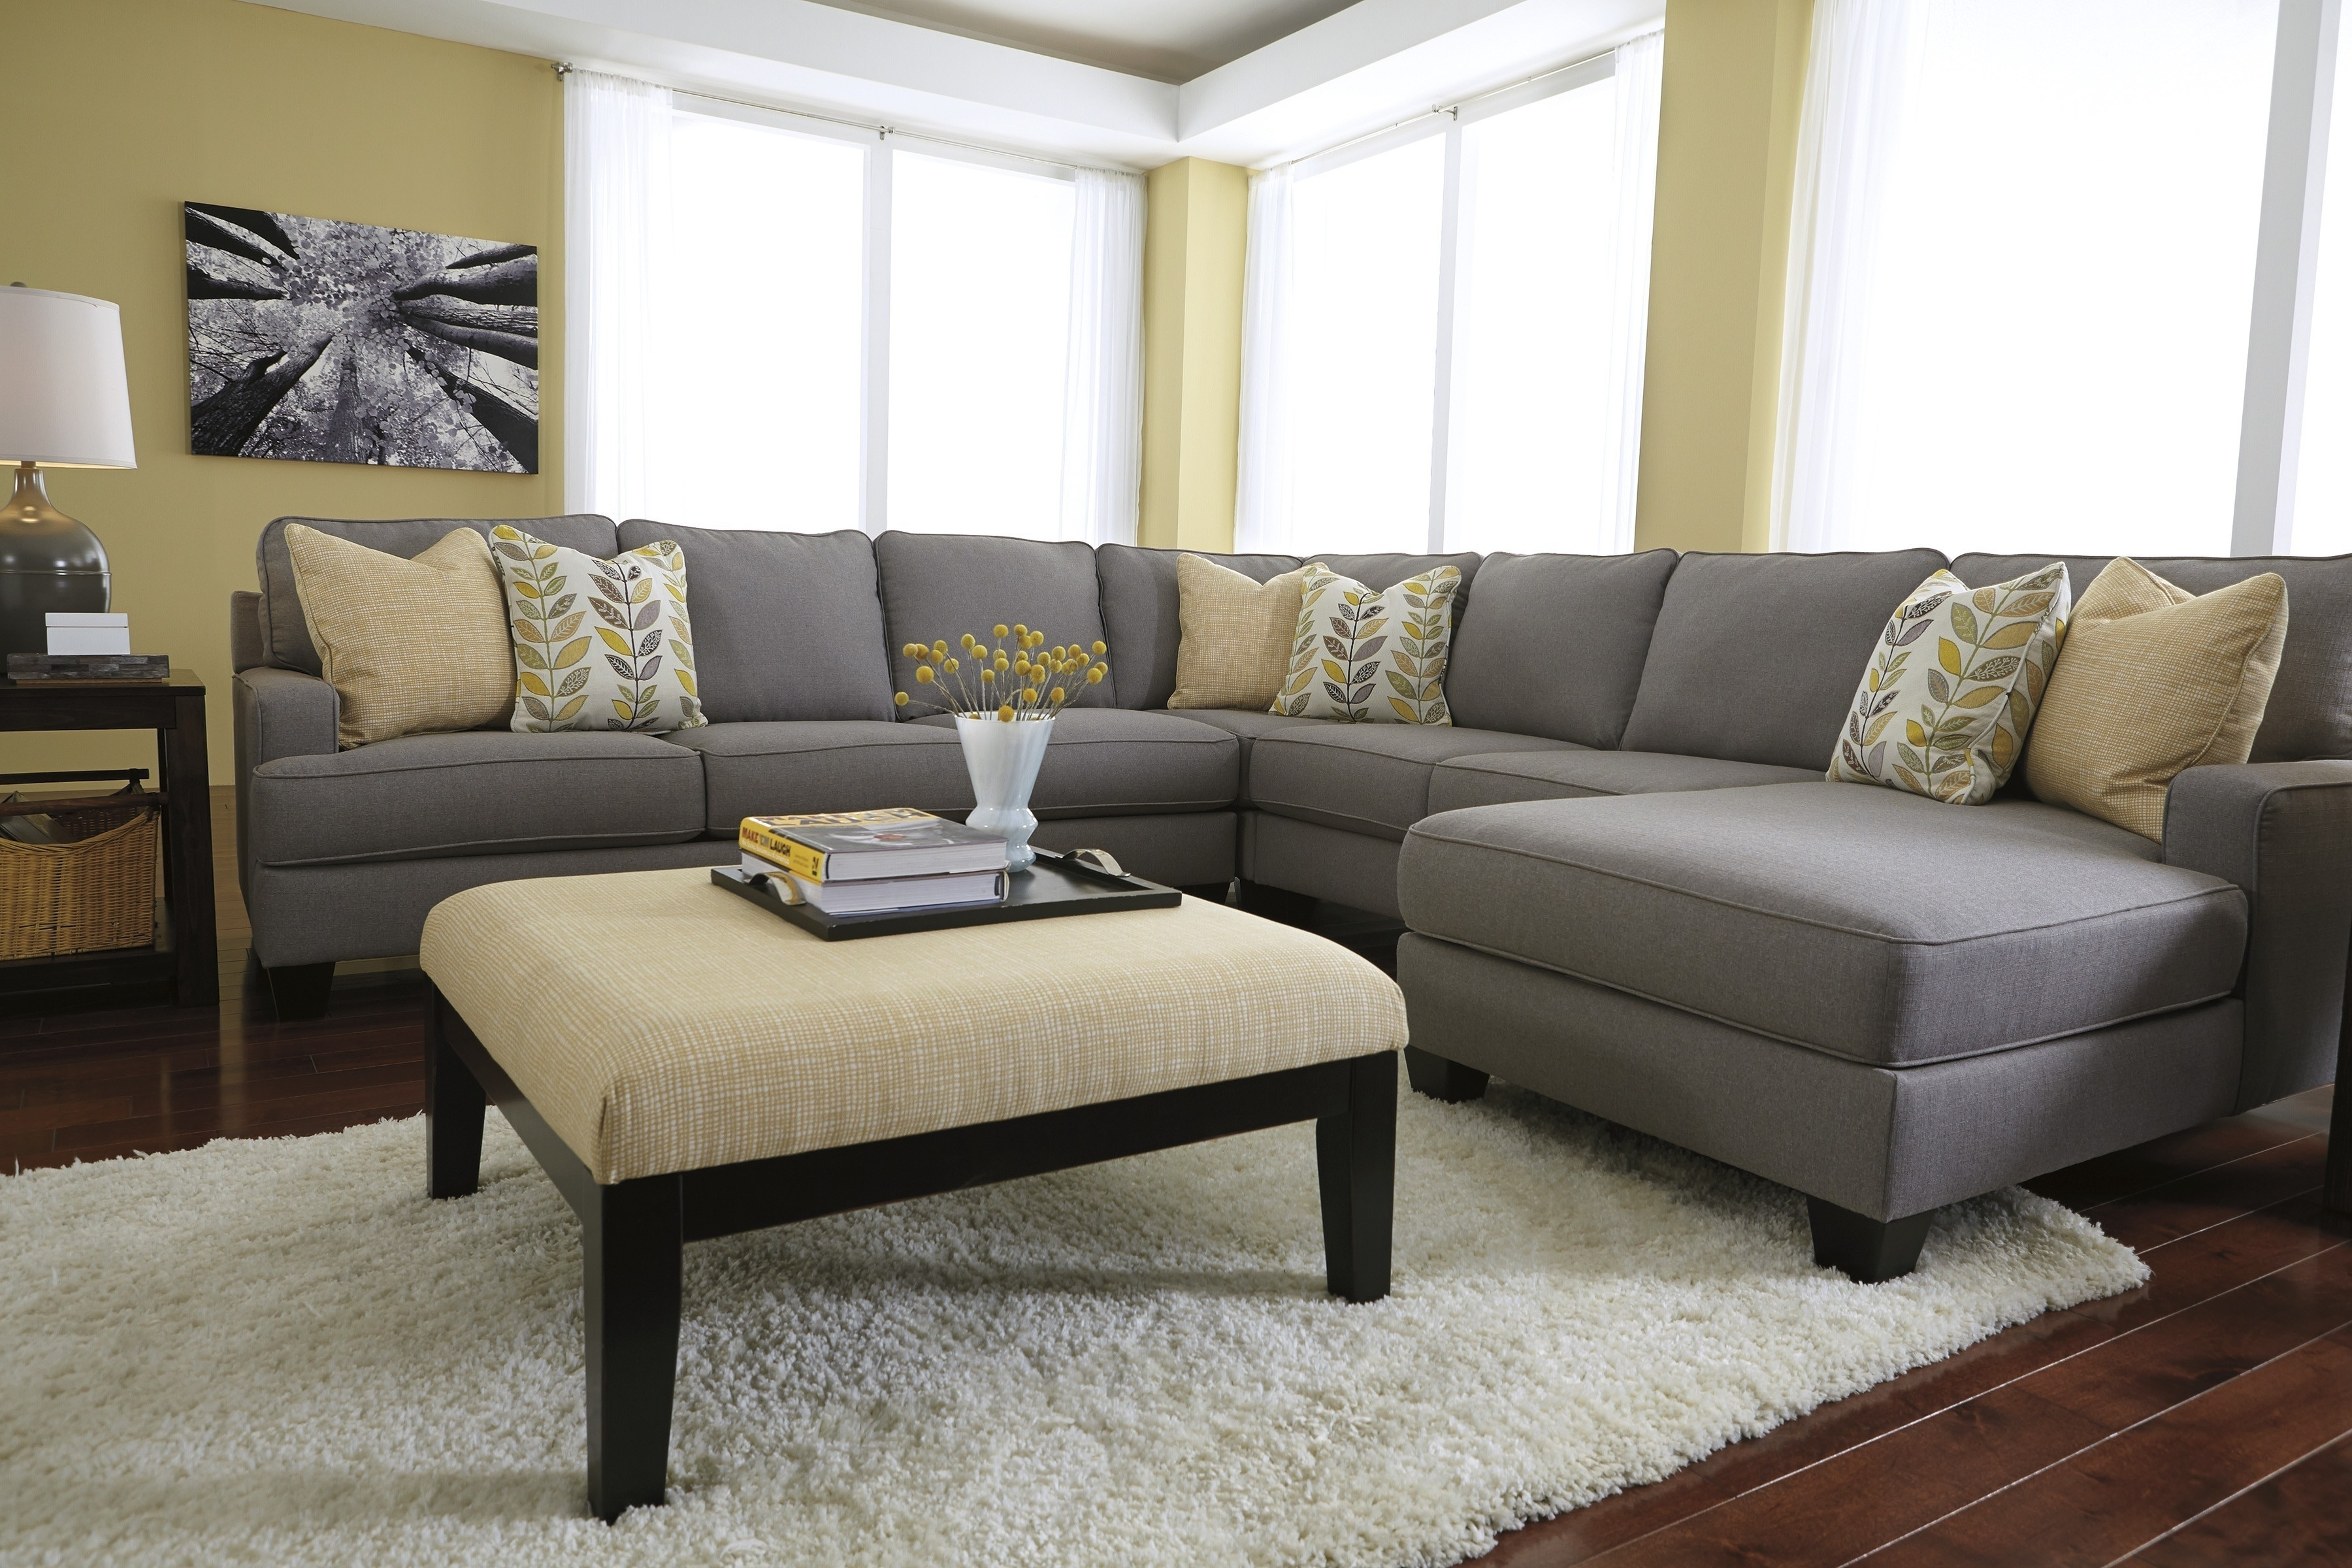 Amazing Oversized Sectional Sofas Cheap 24 With Additional Sleek intended for Sleek Sectional Sofas (Image 1 of 10)